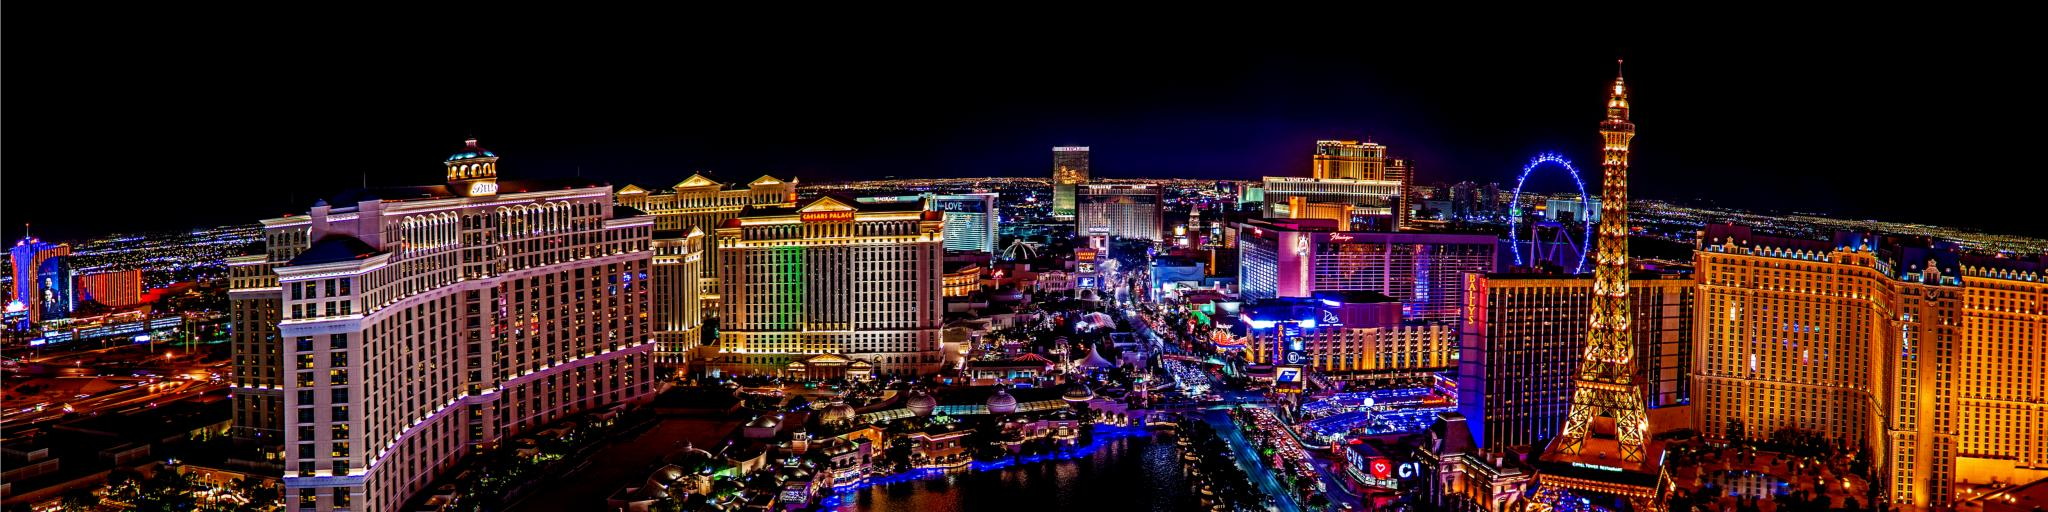 A bird's eye view of the Las Vegas Strip at night with the magnificent sight of city lights in Las Vegas, Nevada